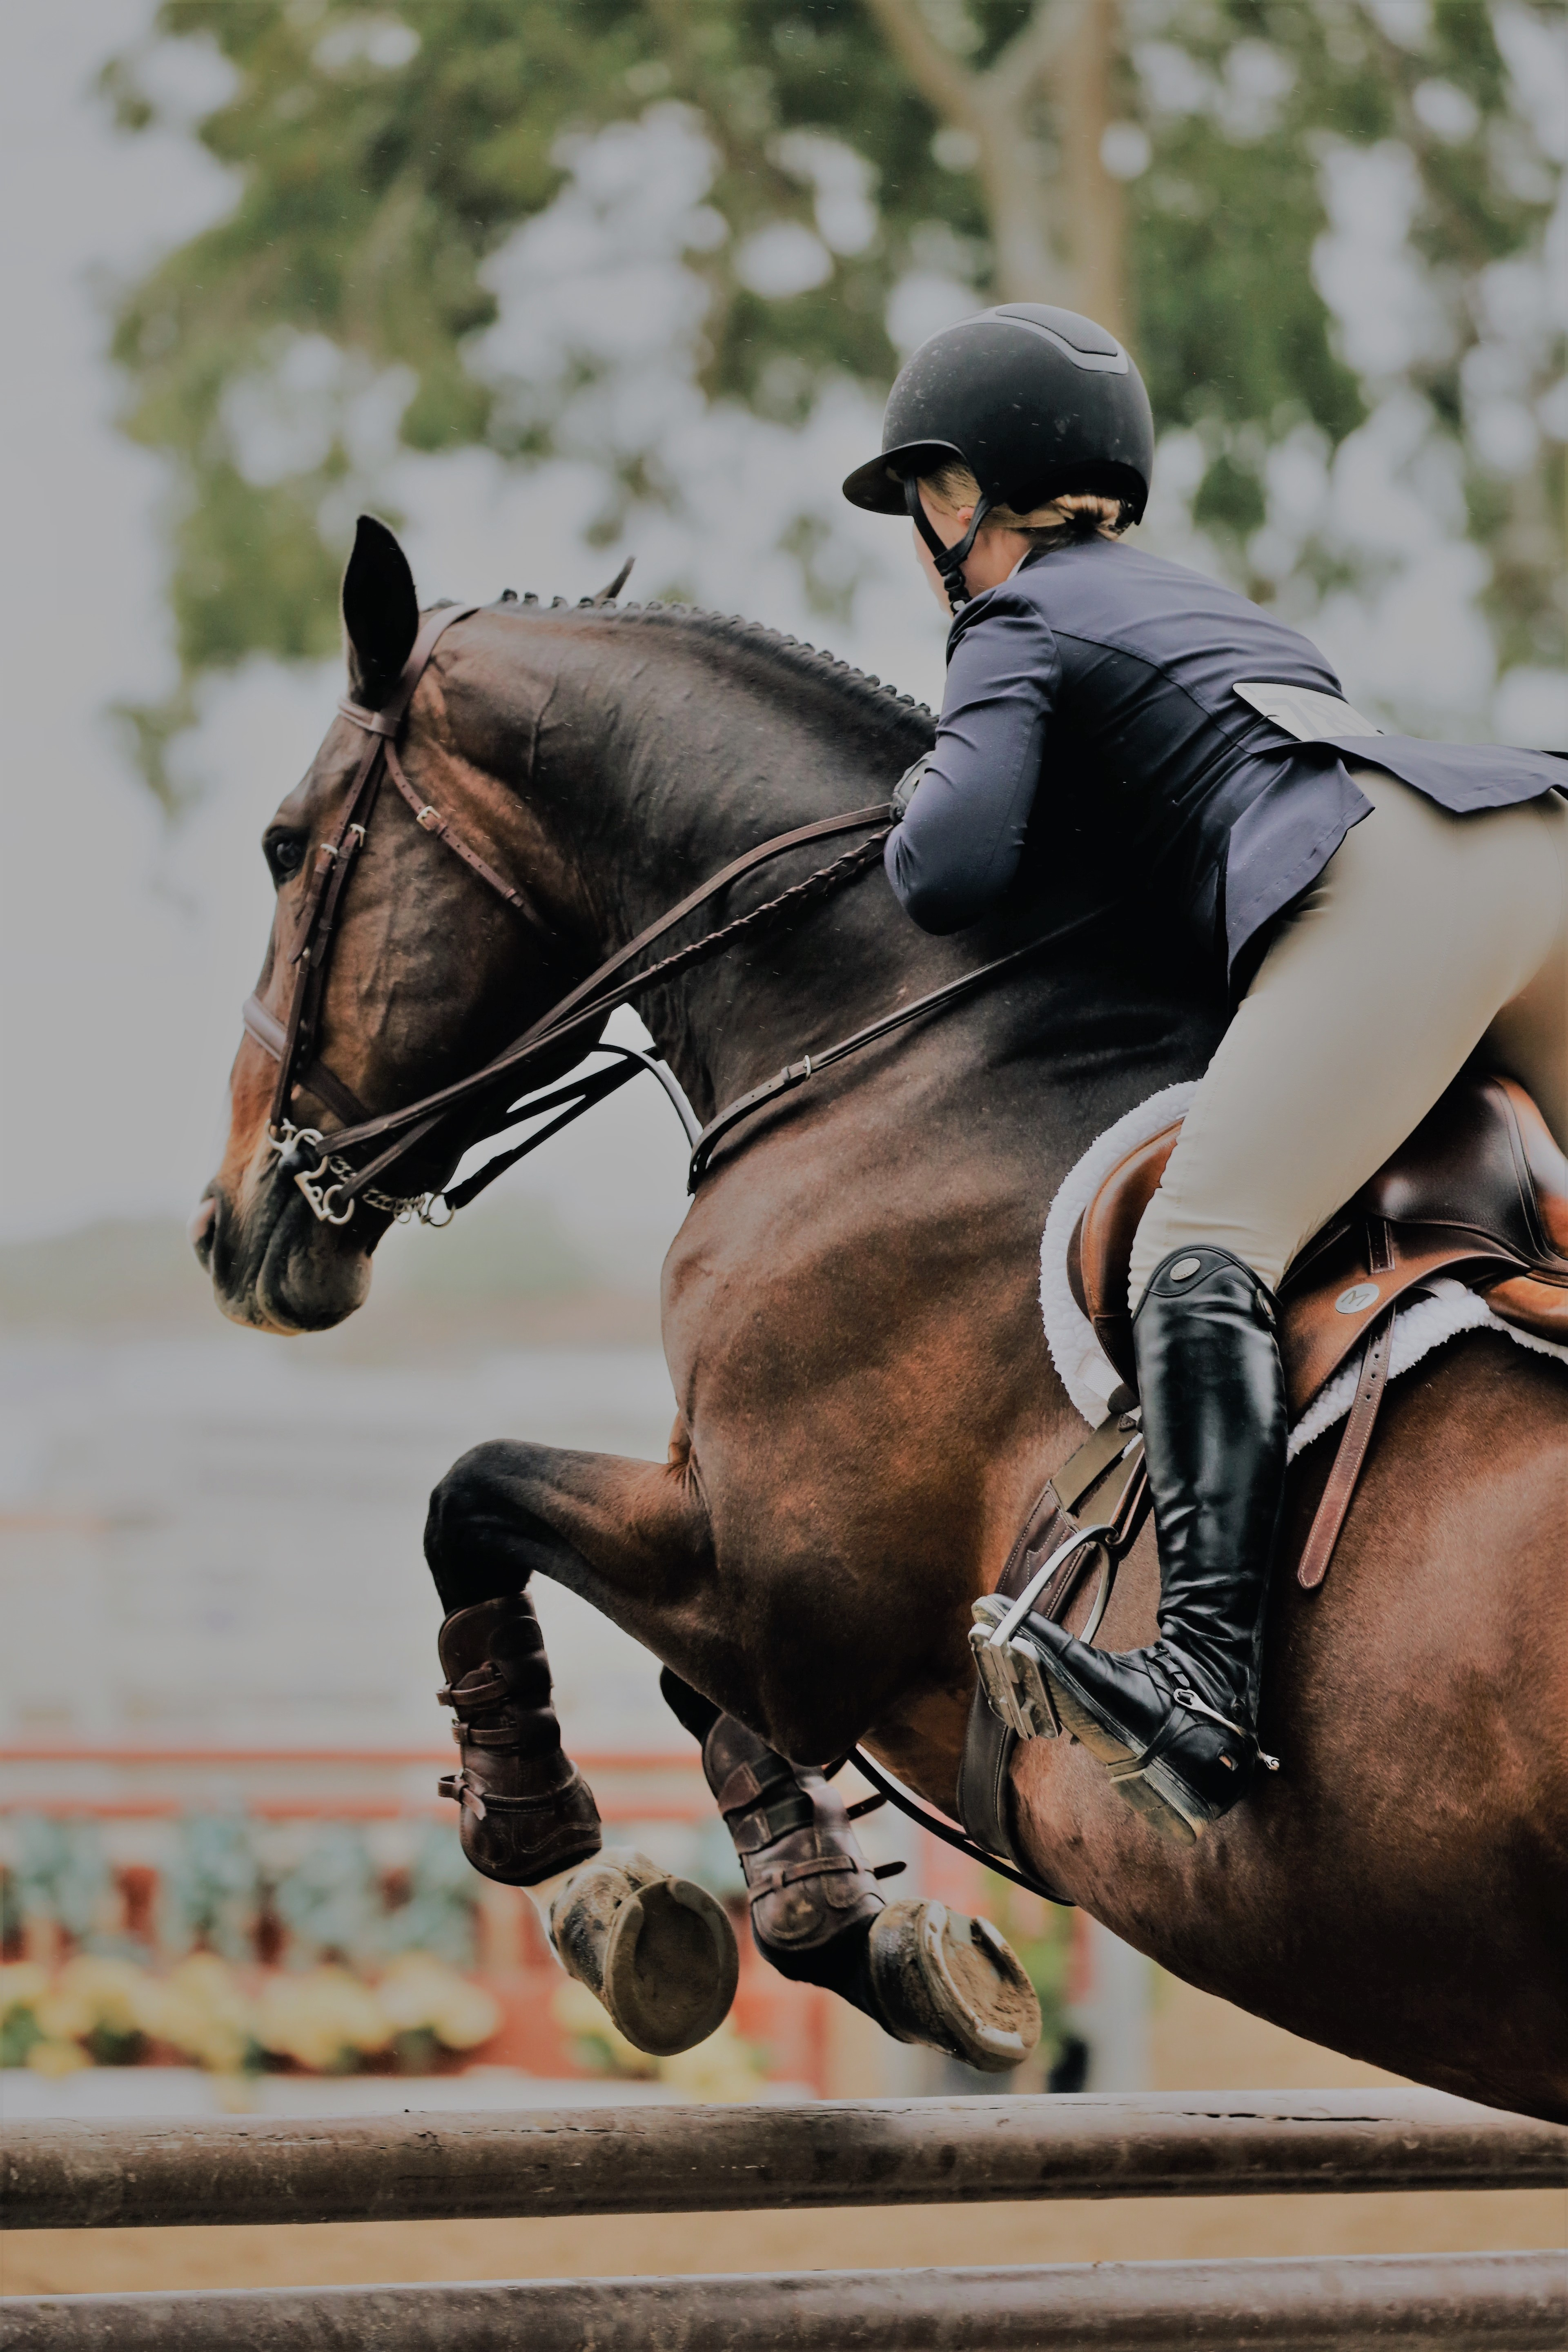 photography-of-person-riding-brown-horse-1125060